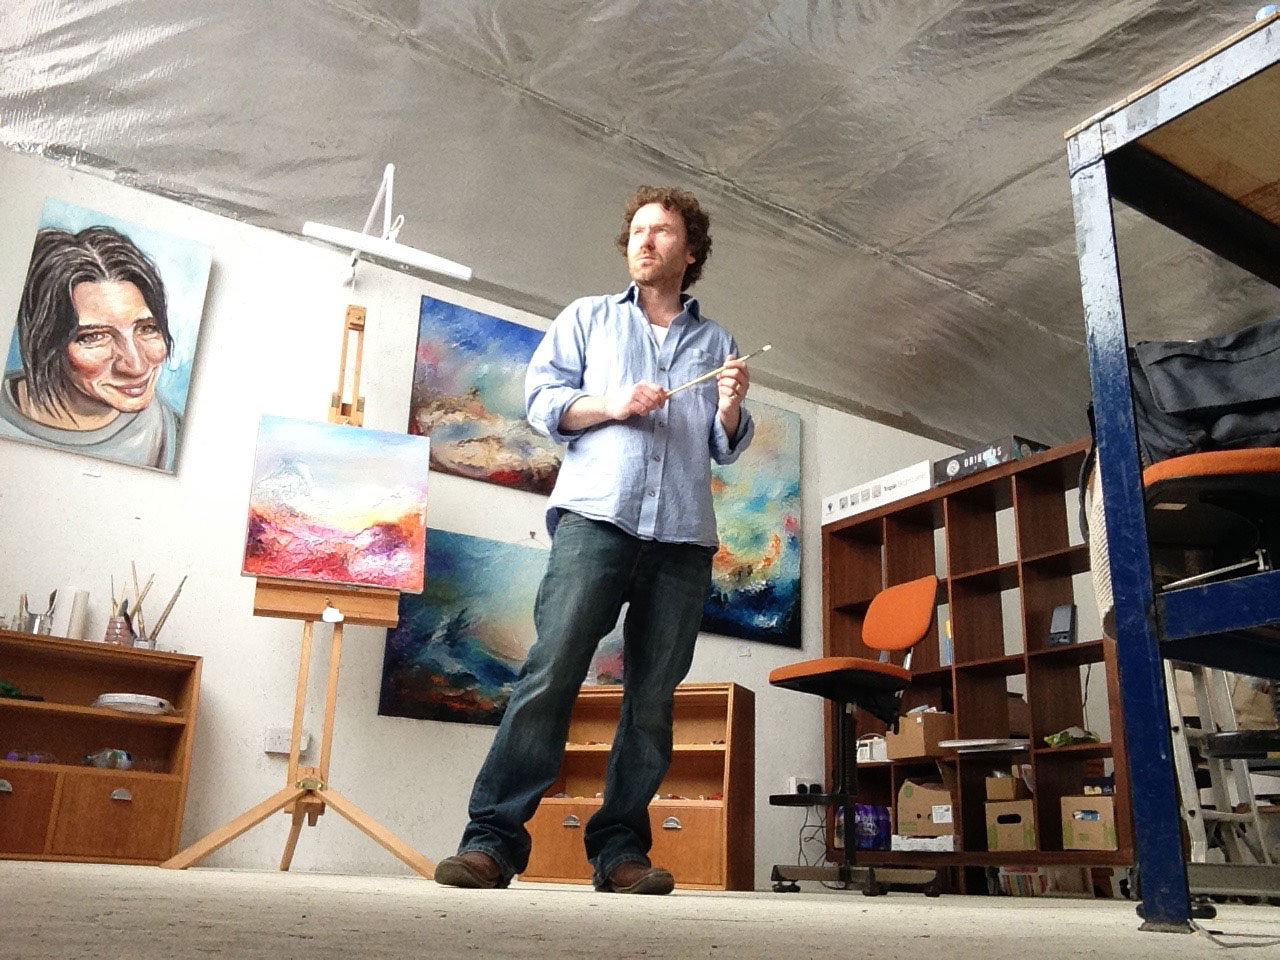 Paul Kingsley Squire in North London Artist Studio